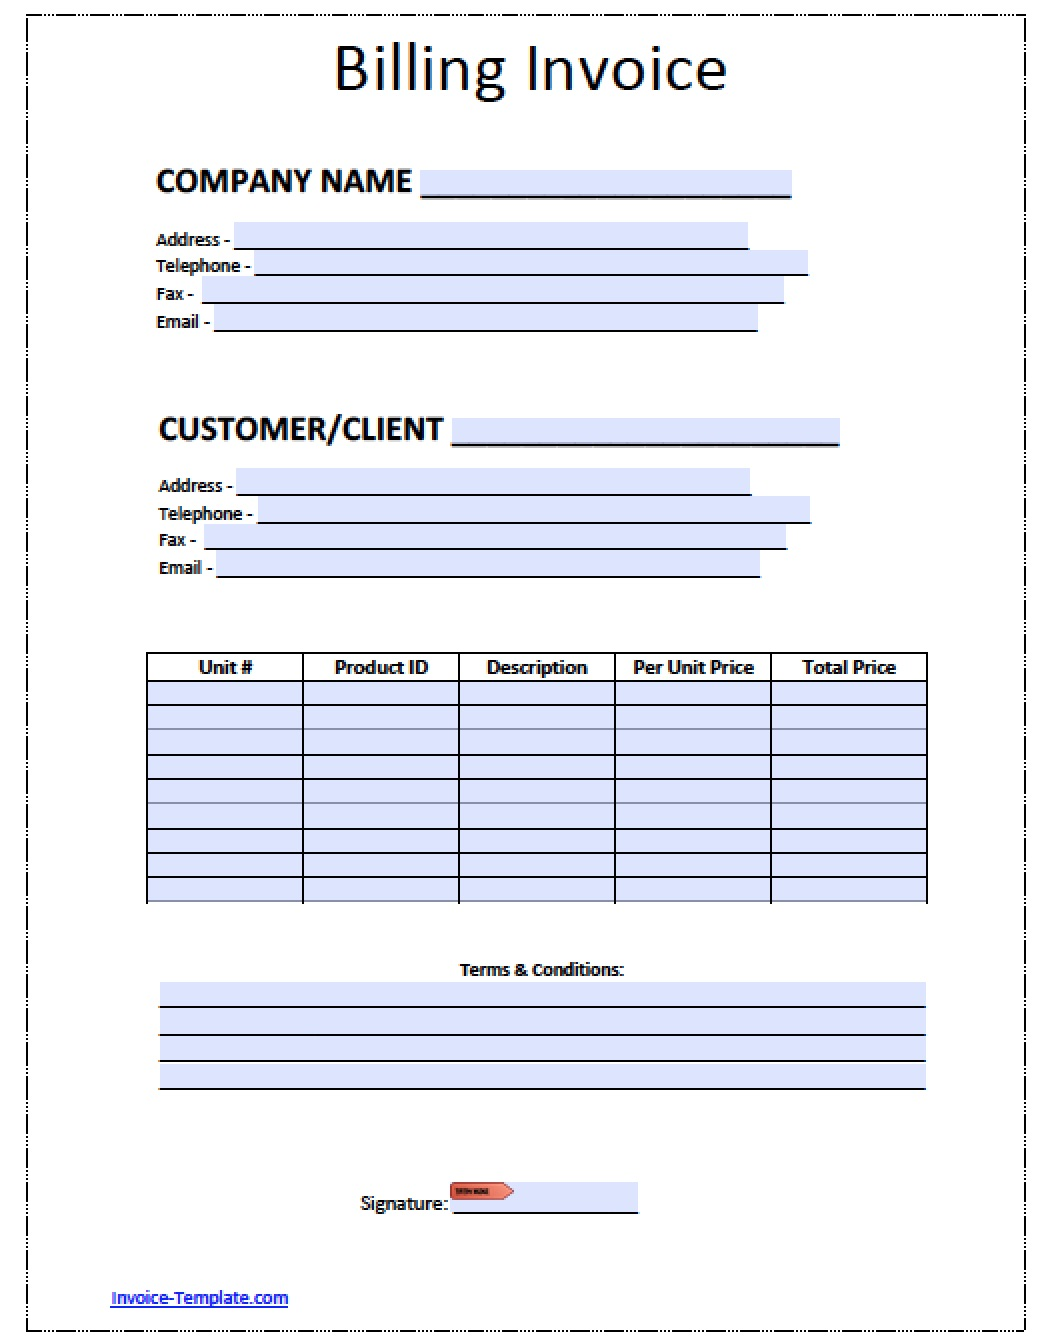 Free Billing Invoice Template Excel PDF Word Doc - Sample billing invoice excel for service business